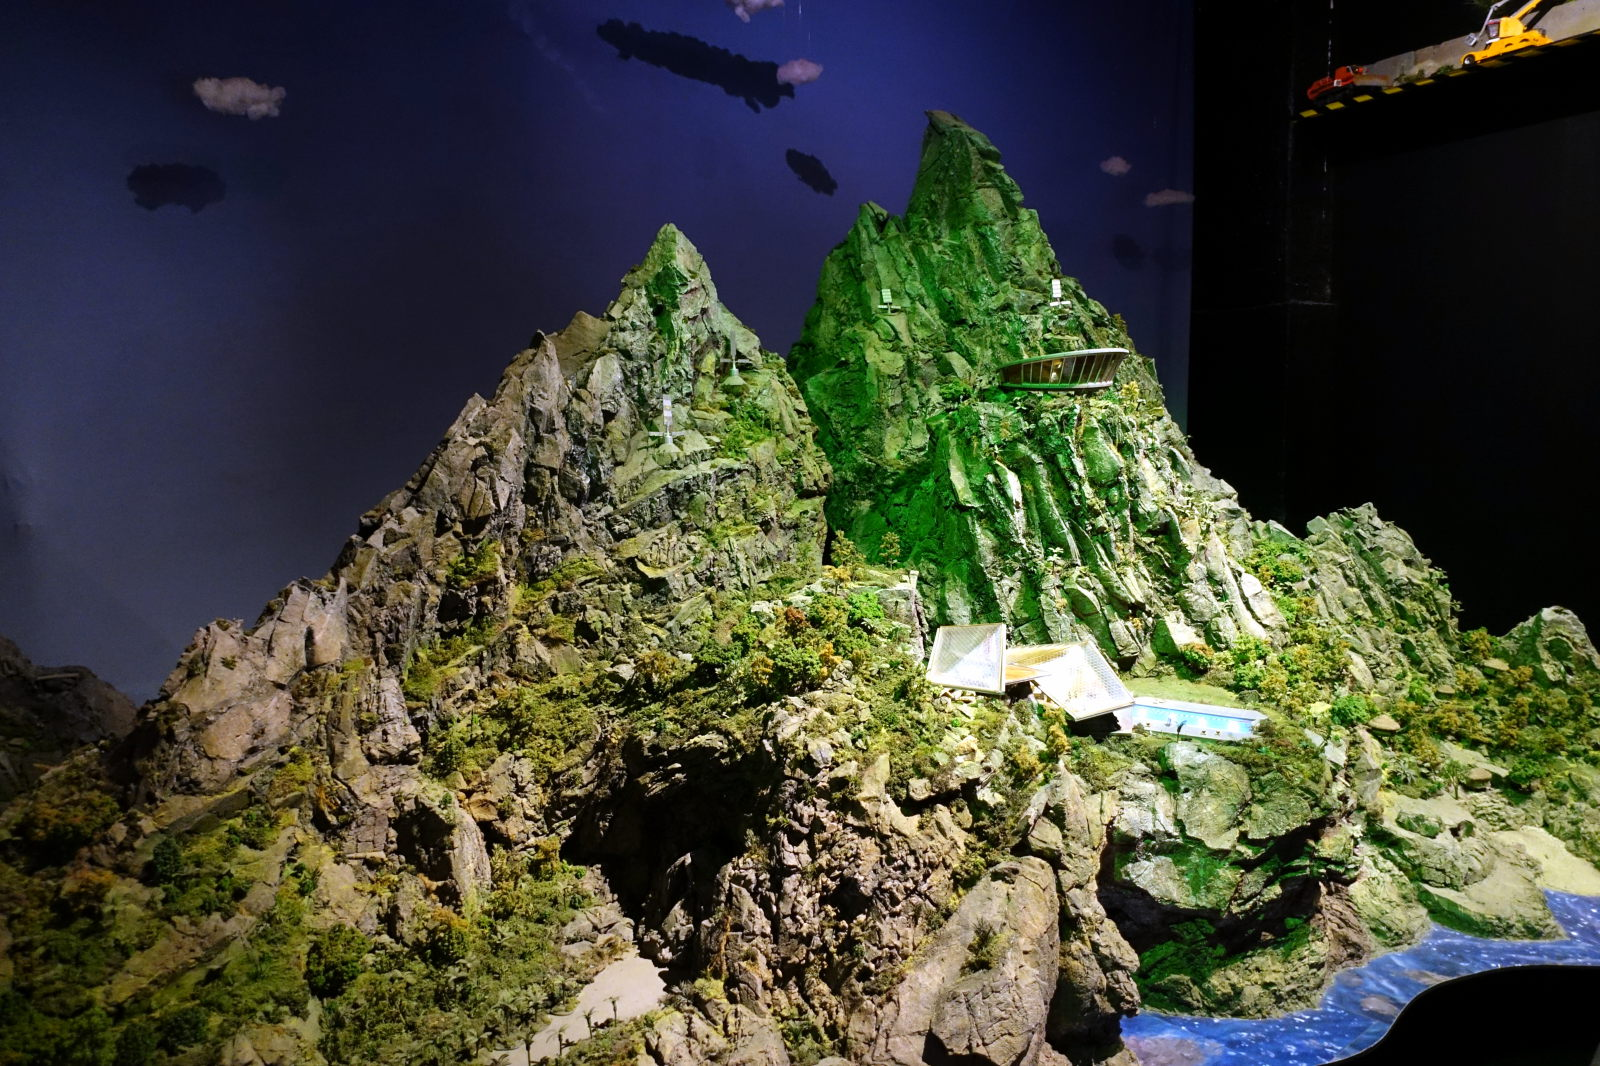 A movie set showing a mountain with green slopes.